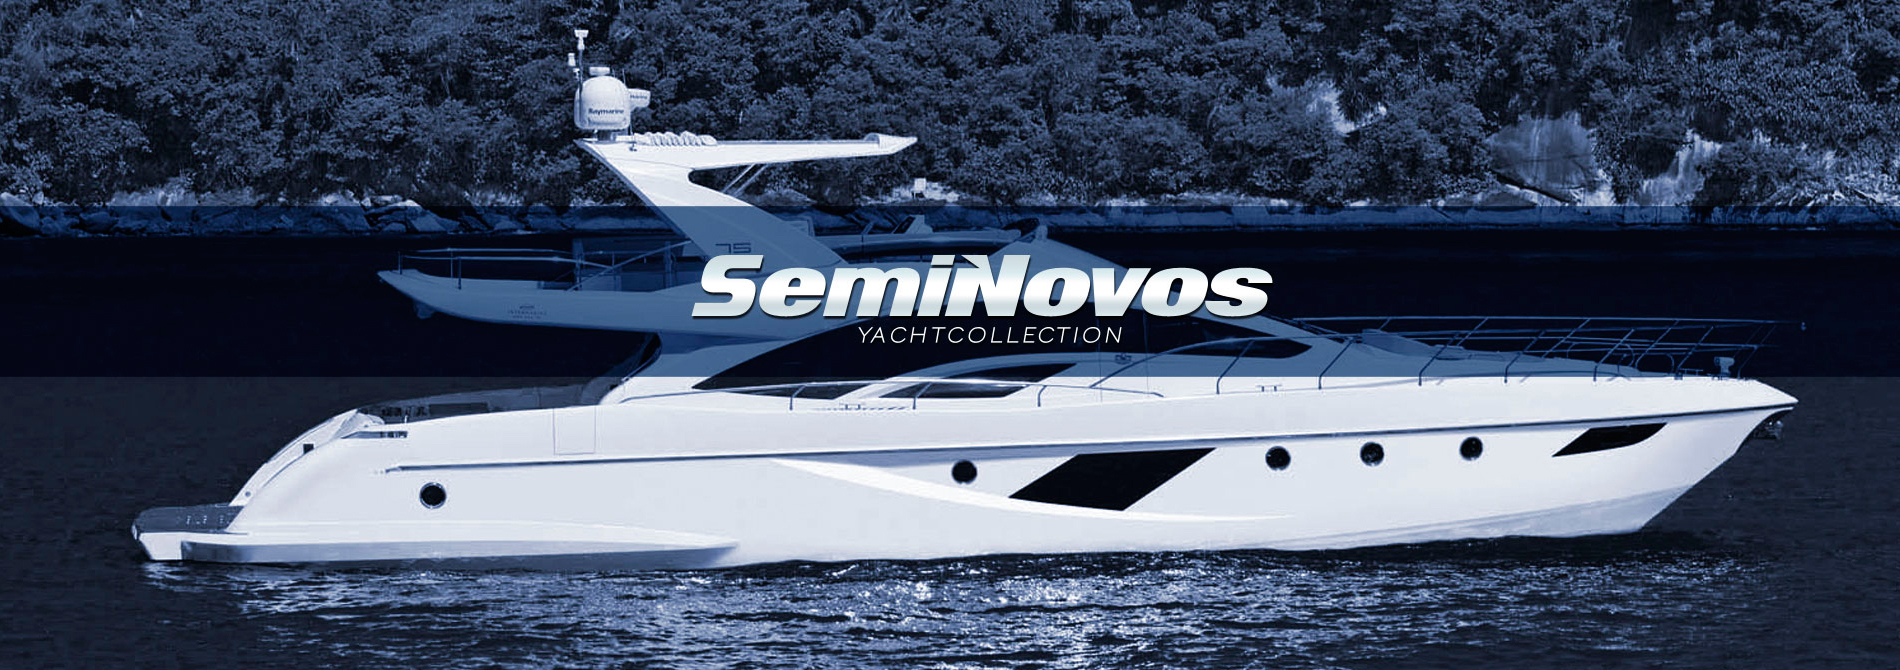 Yachtcollection Seminovos